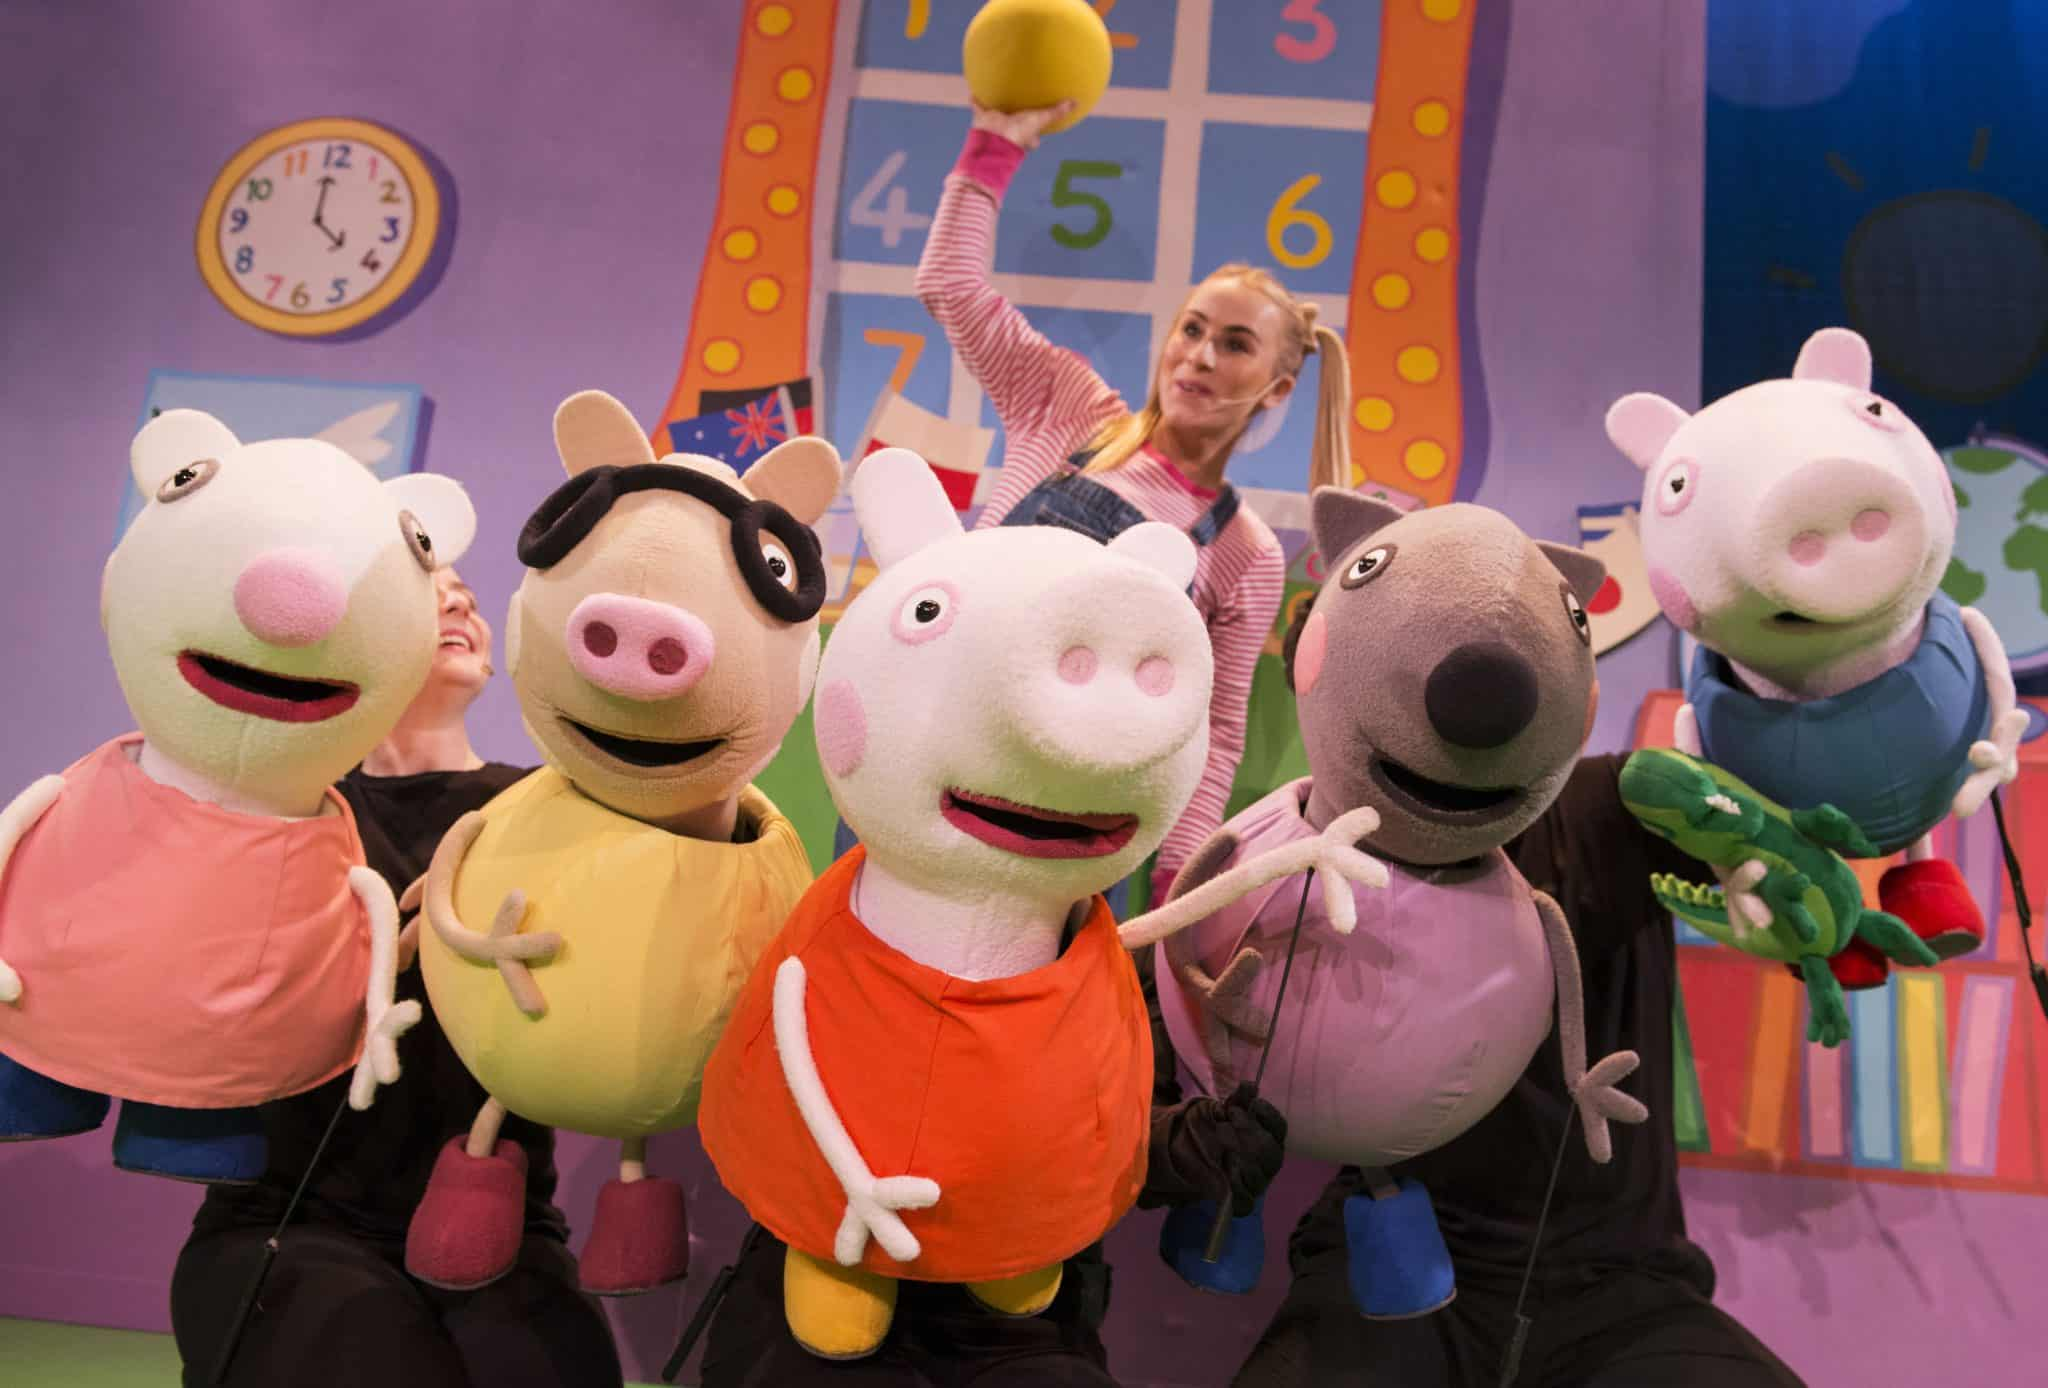 Peppa Pig live UK tour